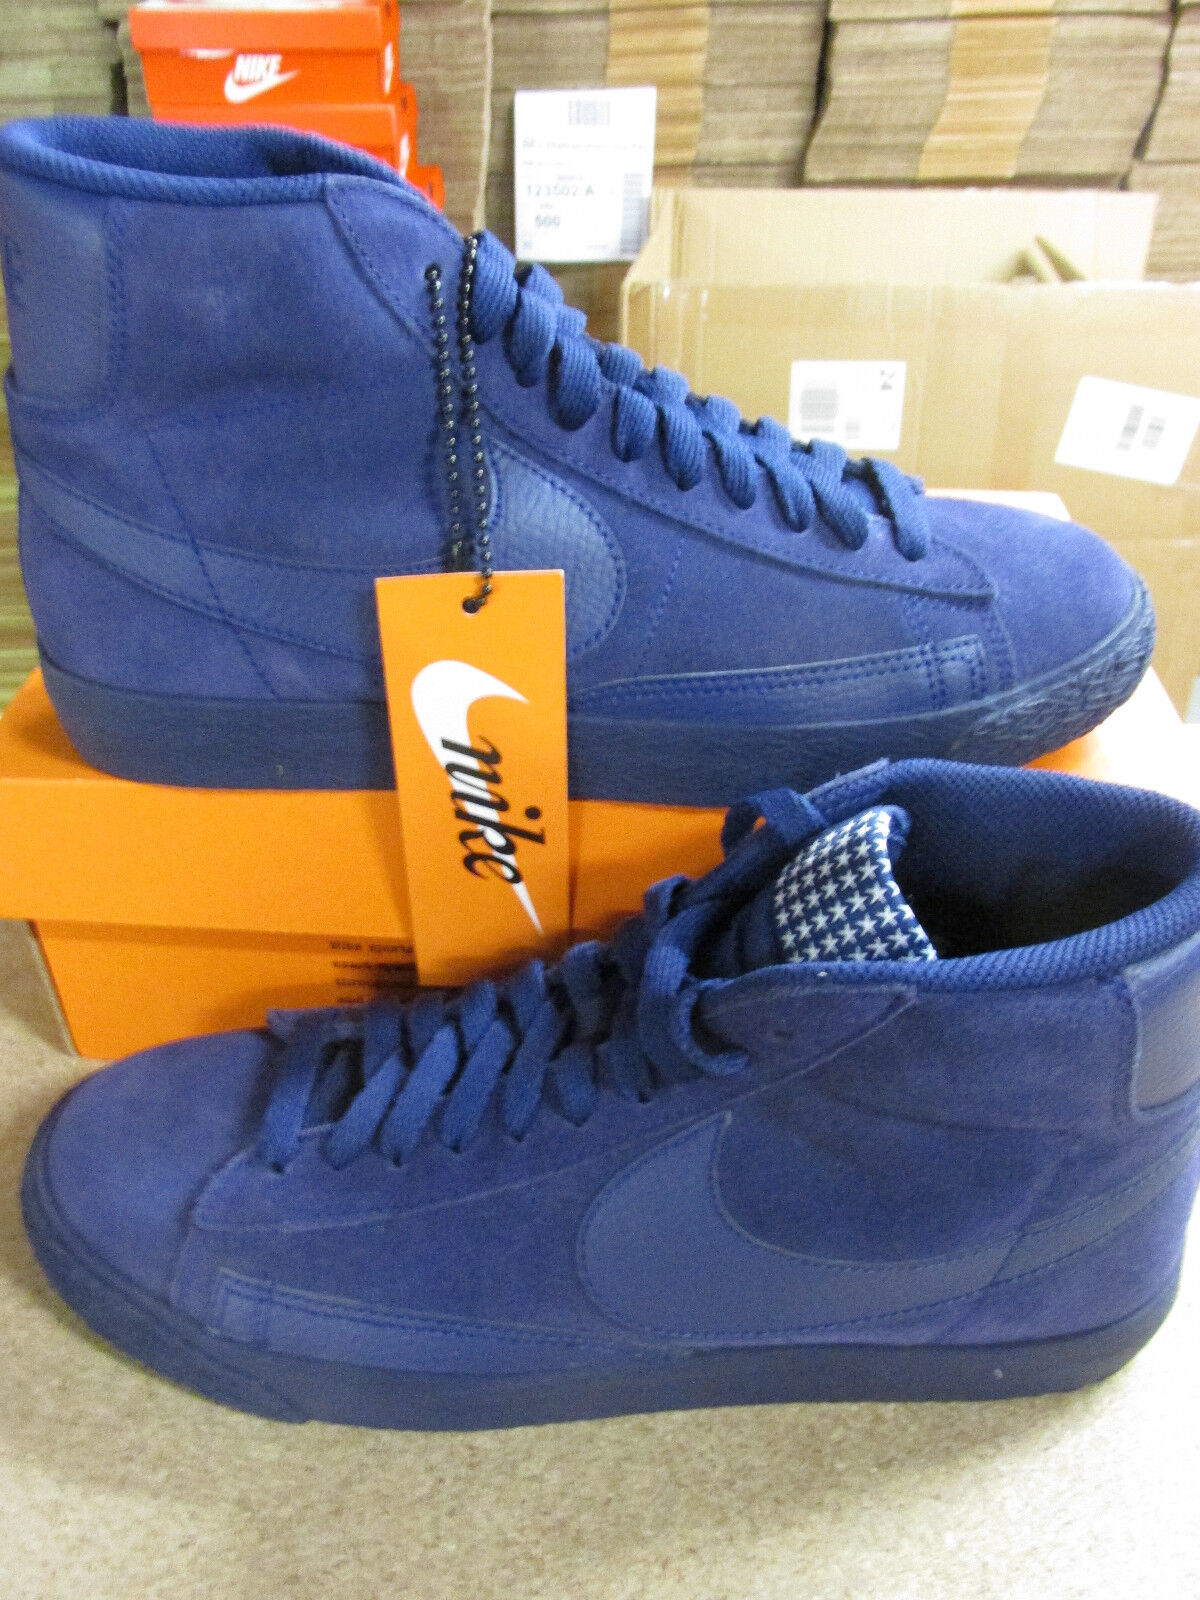 Nike Blazer Mid PRM VNTG Mens Hi Top Trainers 638261 404 Sneakers Shoes